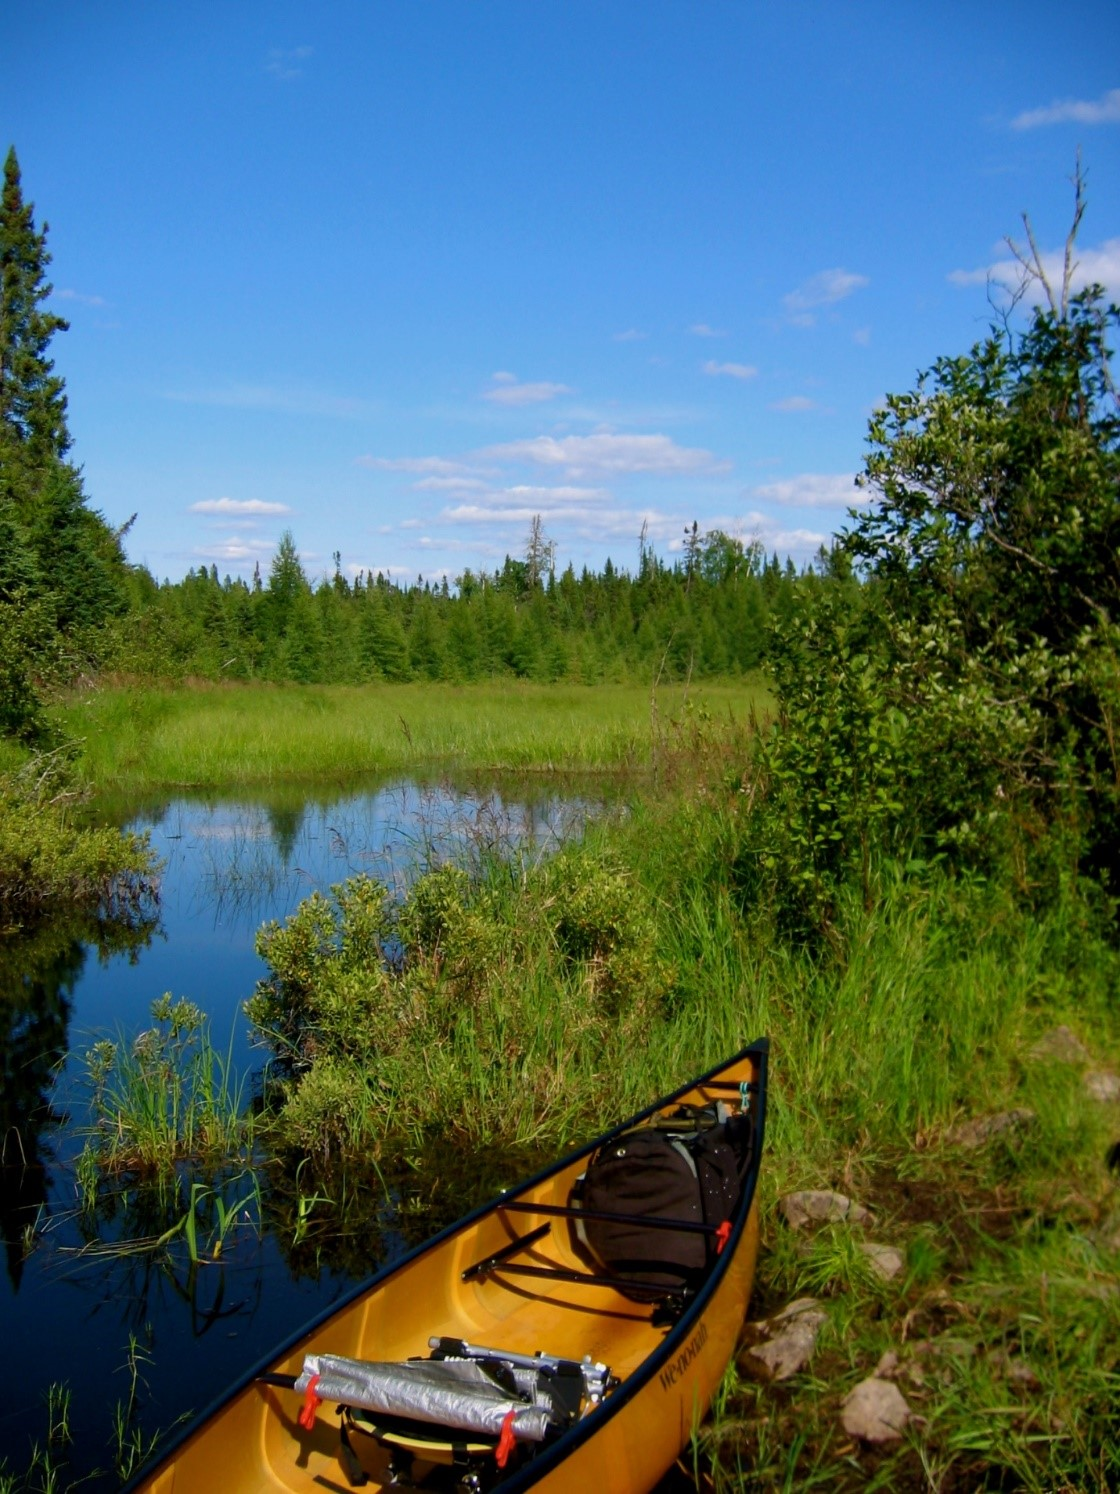 A canoe on the bank at the Boundary Waters Canoe Area Wilderness. The area is just one region in Minnesota and Ontario where officials are working hard to keep invasive species out of the Rainy-Namakan system. Credit: US Forest Service